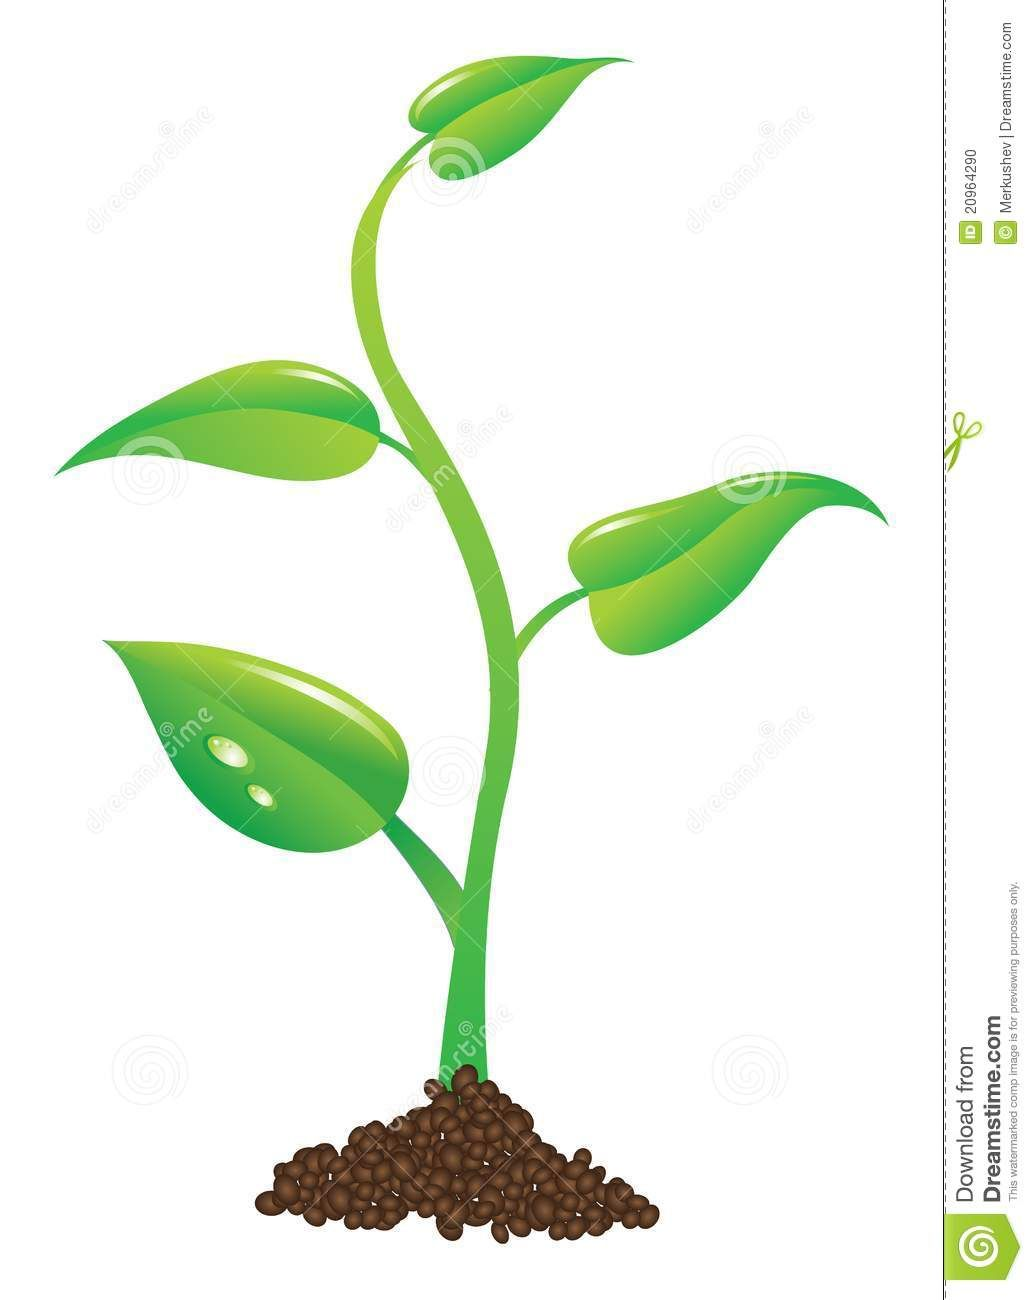 medium resolution of plant sprout clipart google search